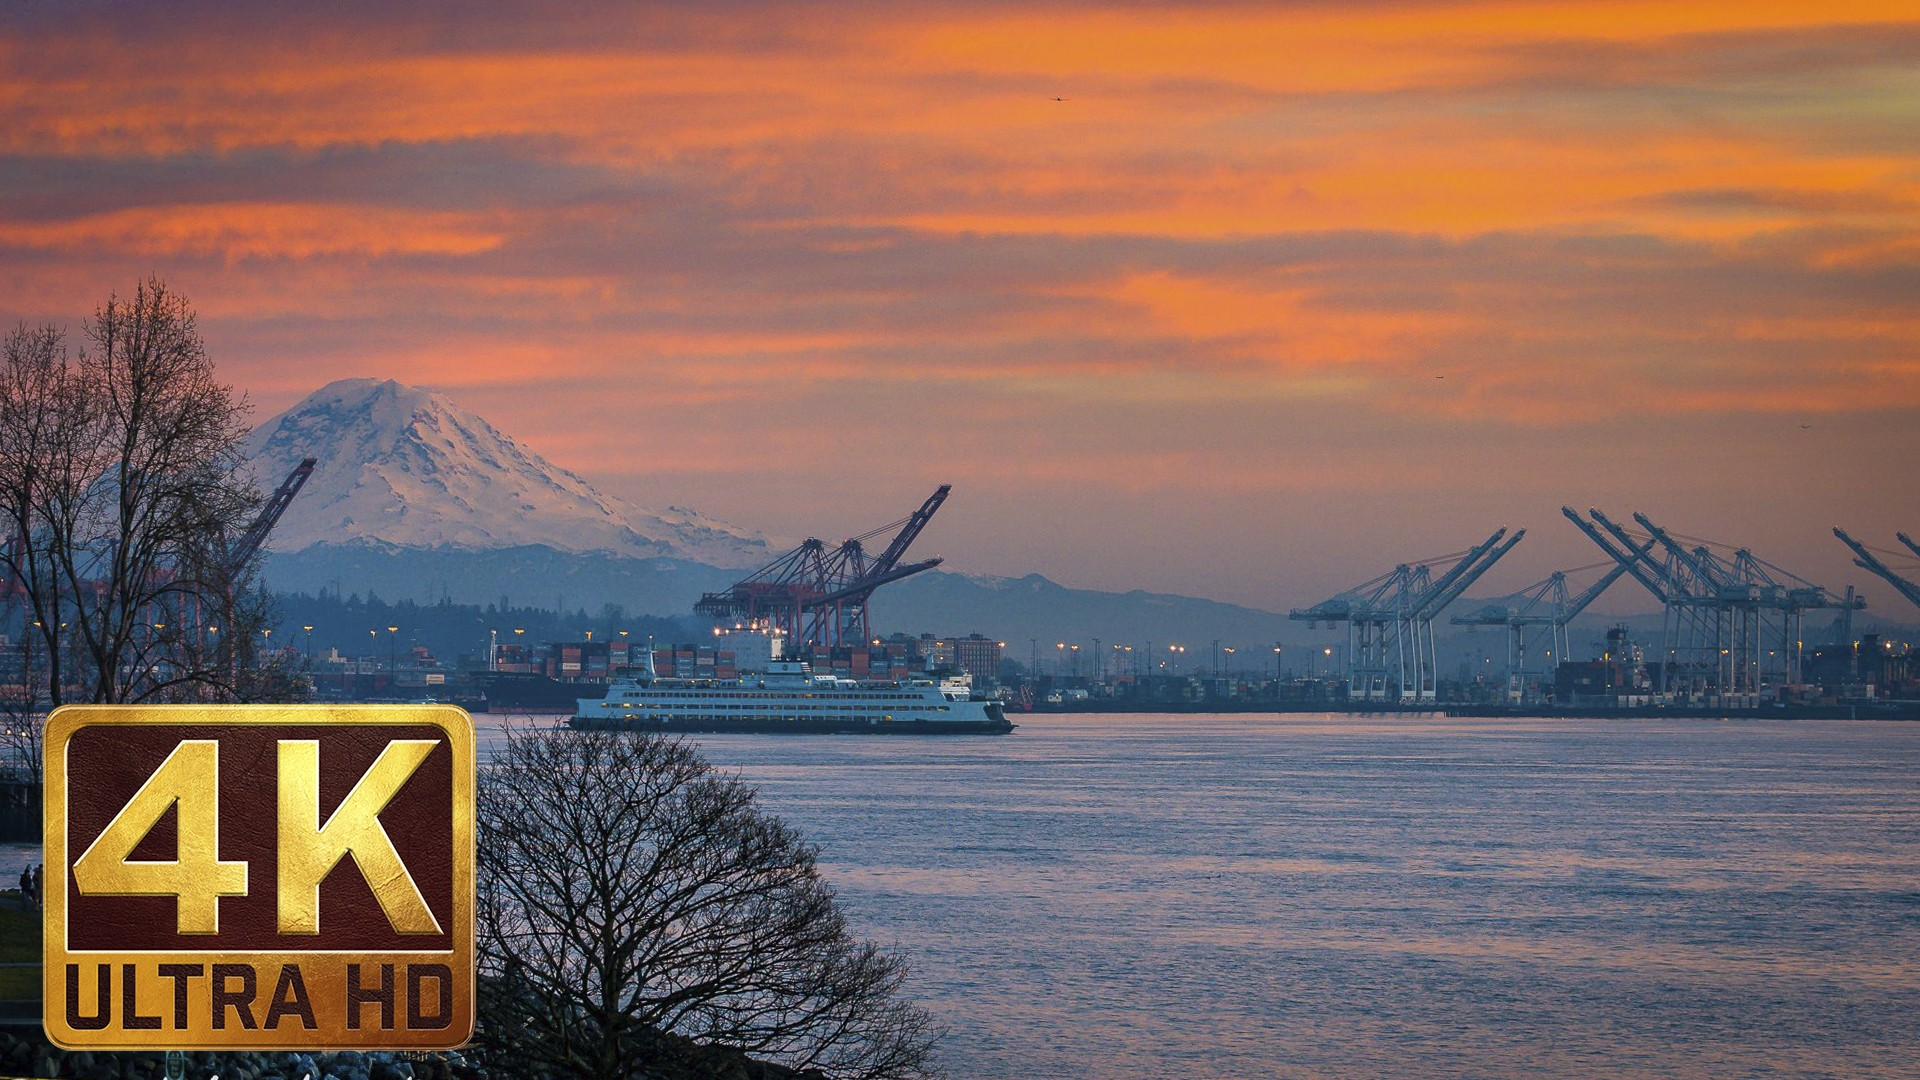 View from Olympic Sculpture Park. Episode 2 – 4K Relax Video